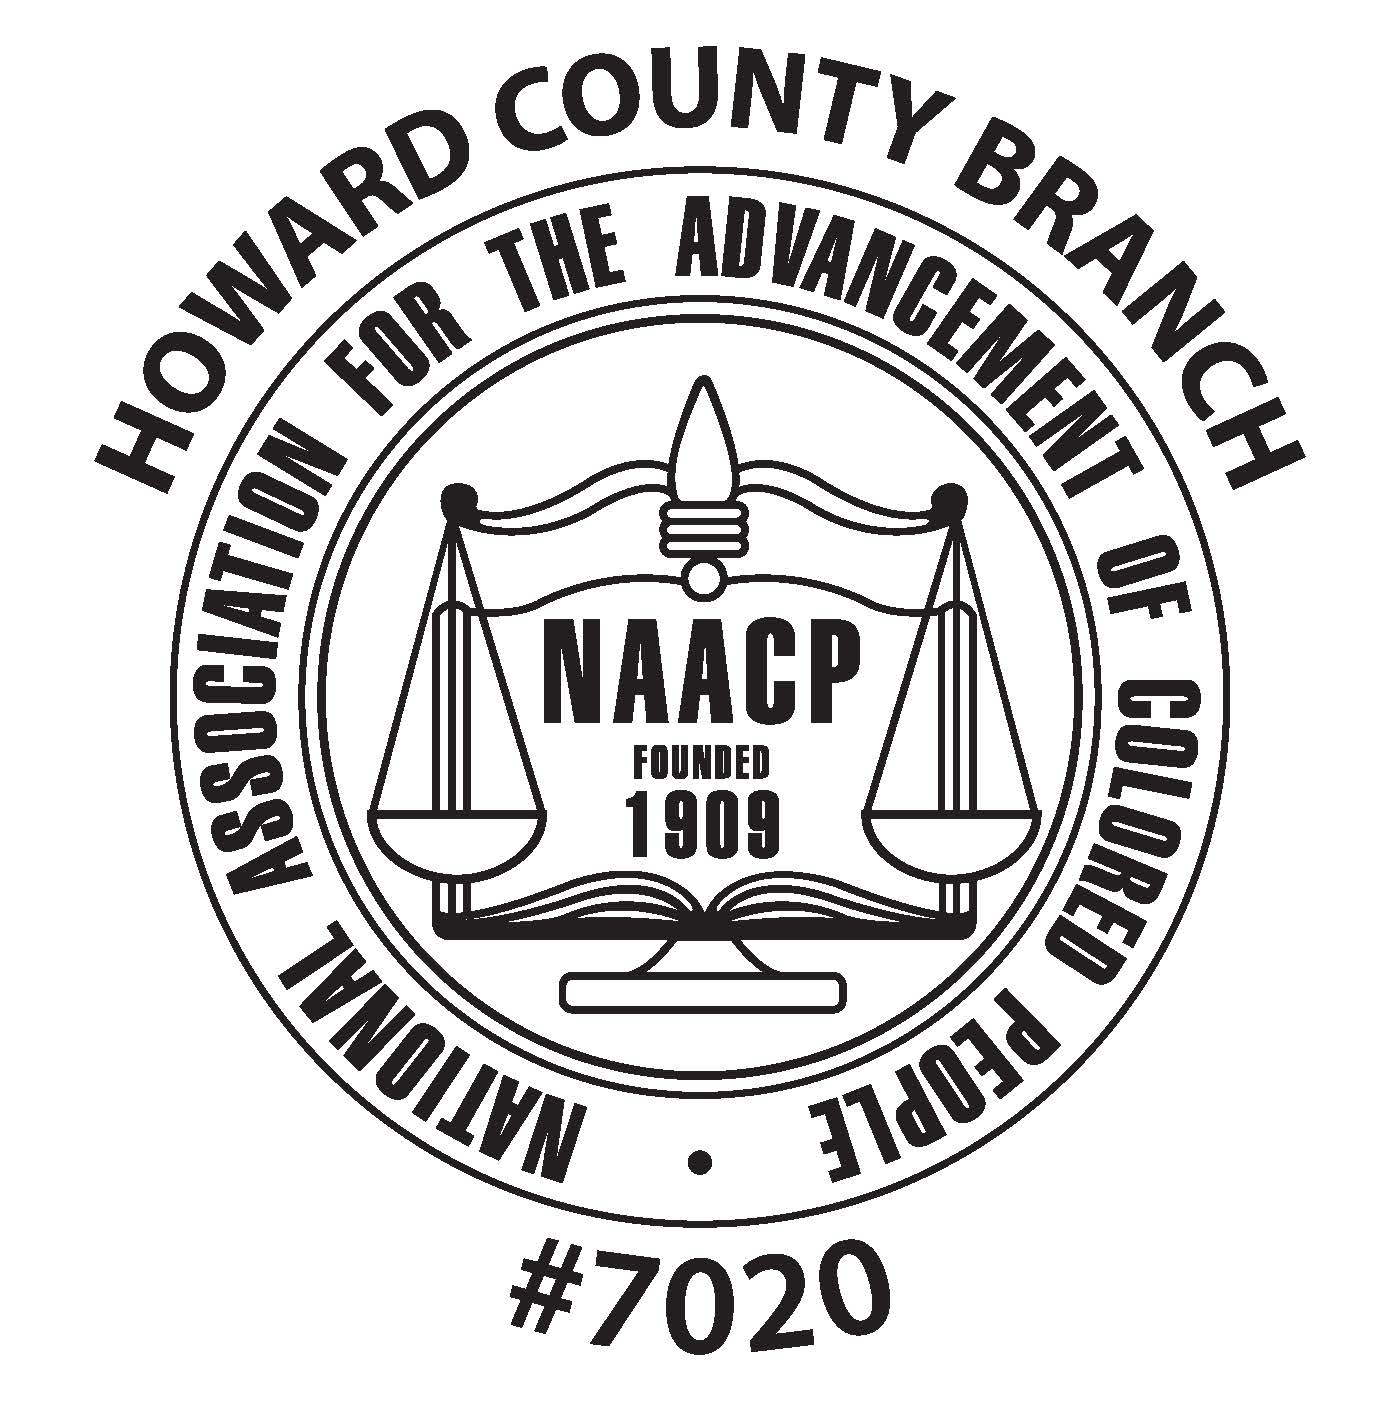 NAACP_Howard_Co_7020_seal_logo_jpeg.jpg